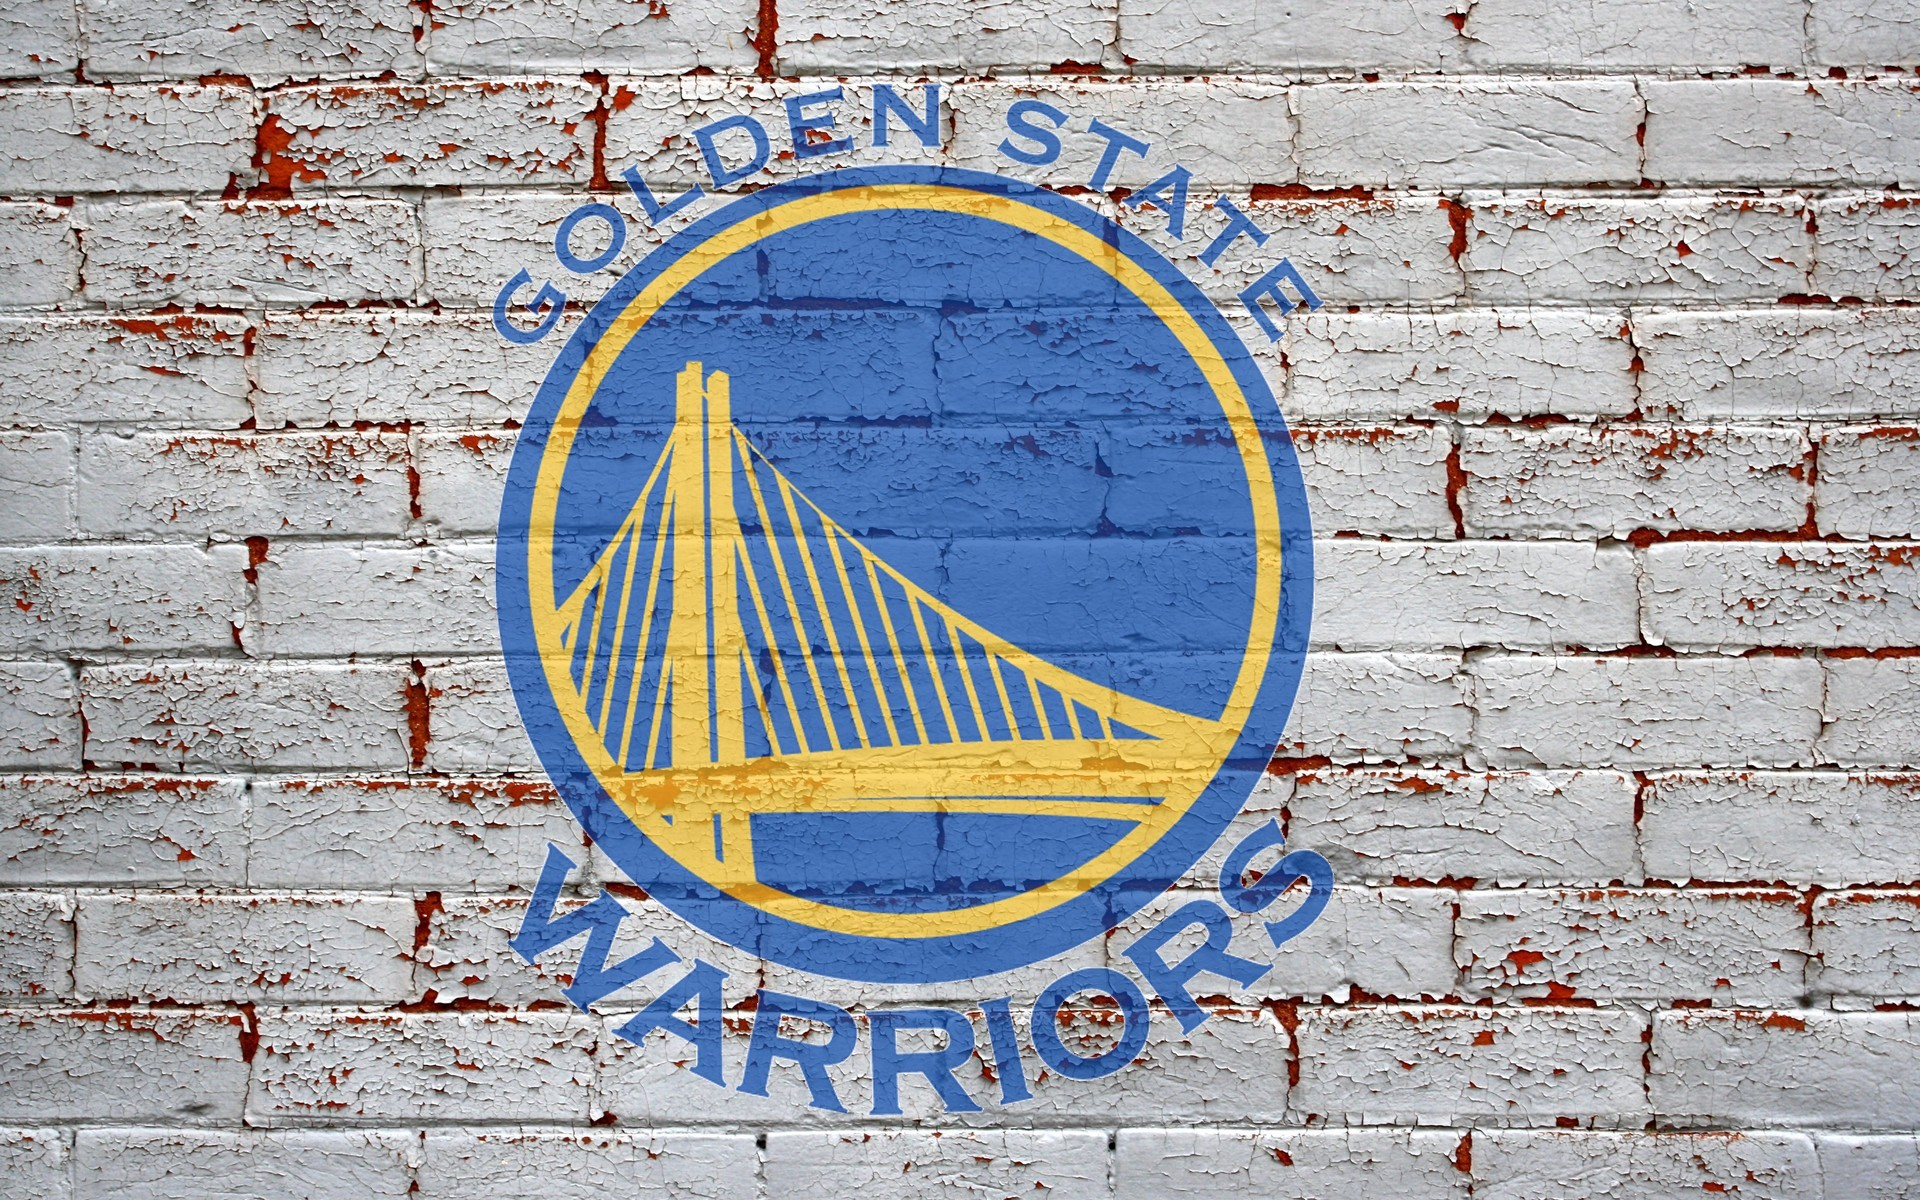 Res: 1920x1200, GOLDEN STATE WARRIORS NBA basketball wallpapers.